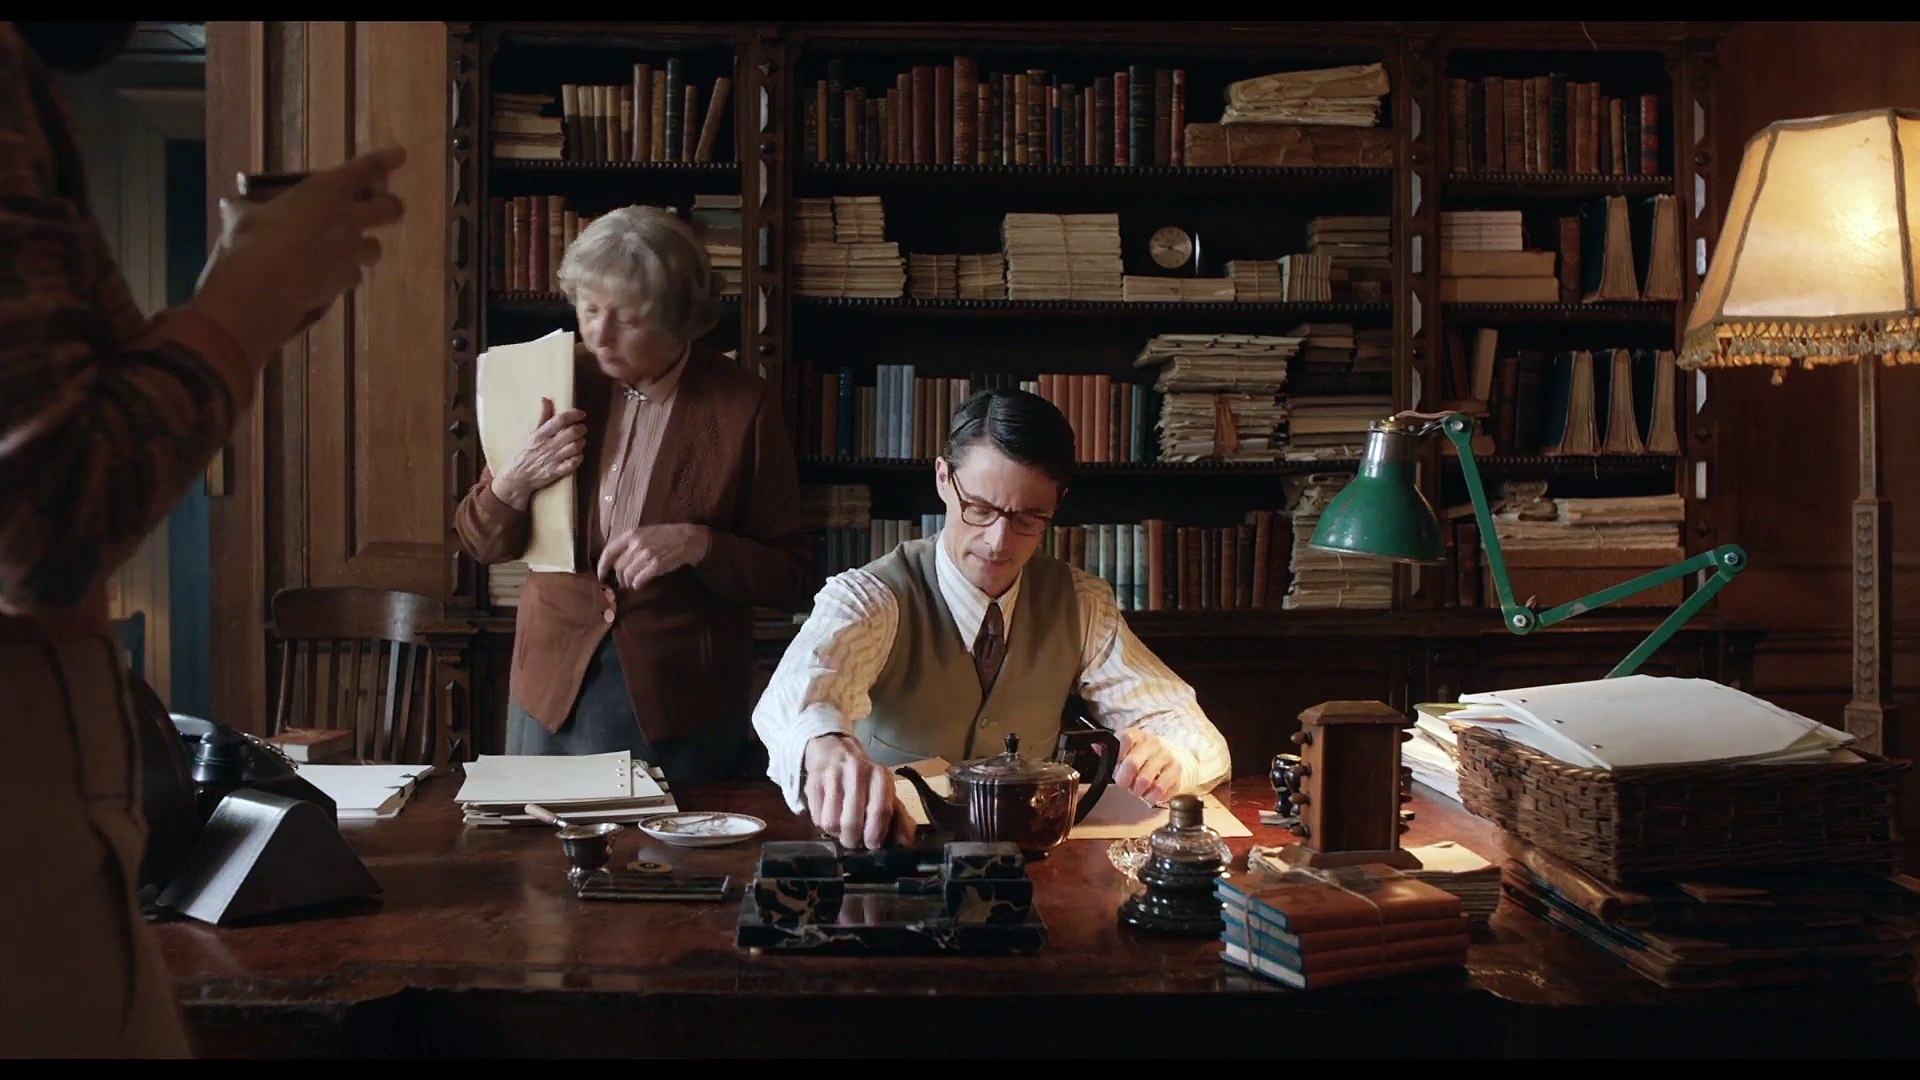 THE GUERNSEY LITERARY & POTATO PEEL PIE SOCIETY - Lily James and Matthew Goode